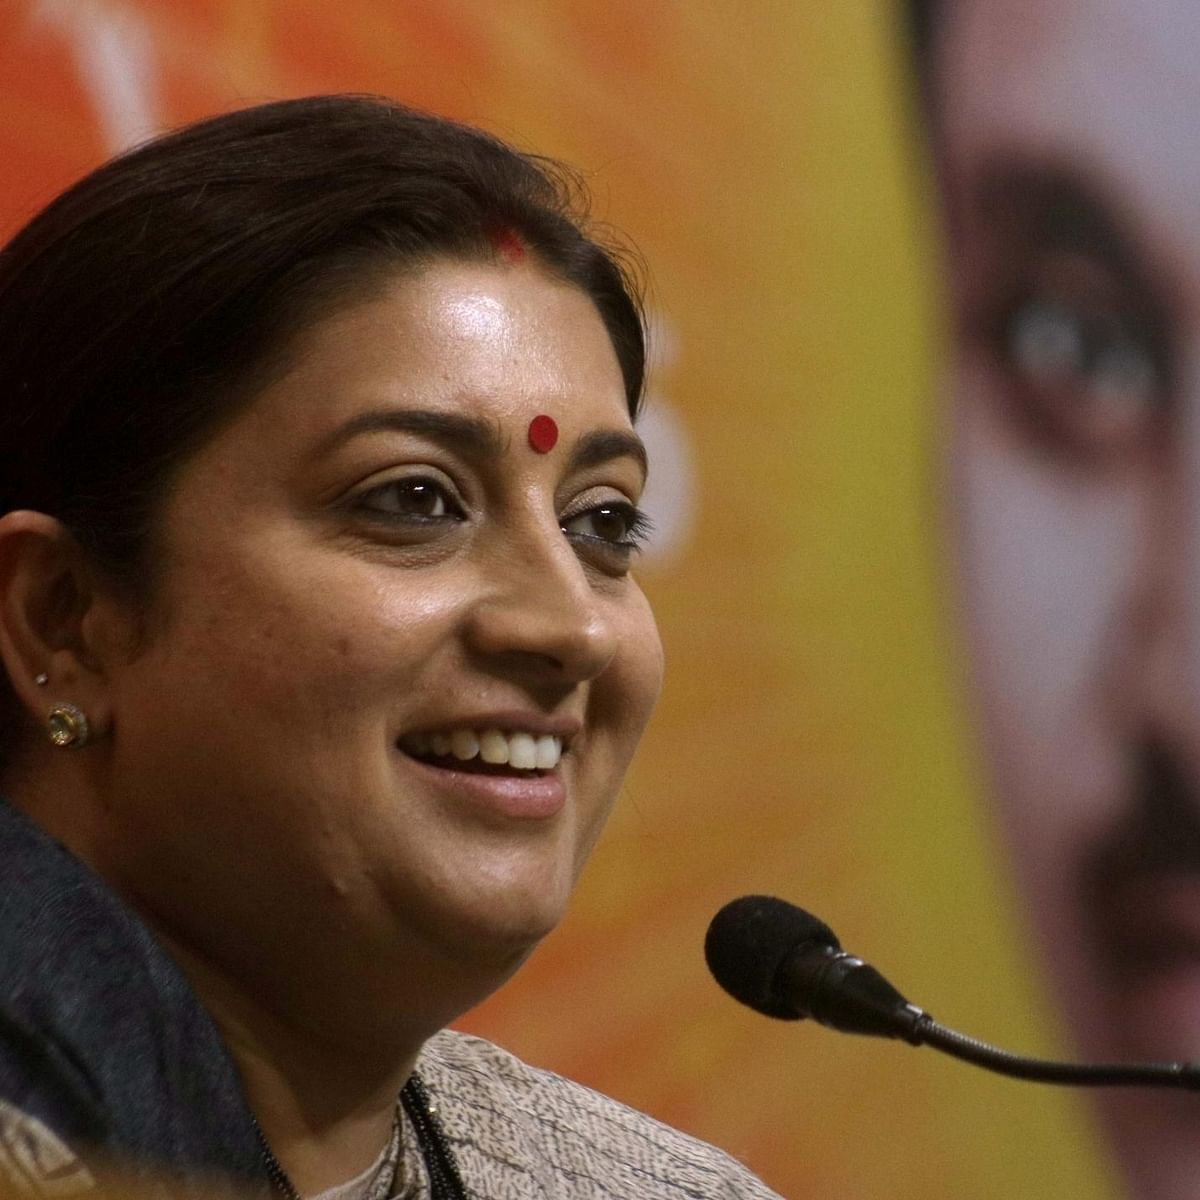 'Law has taken its course…': Smriti Irani on former BJP MLA Sengar's conviction